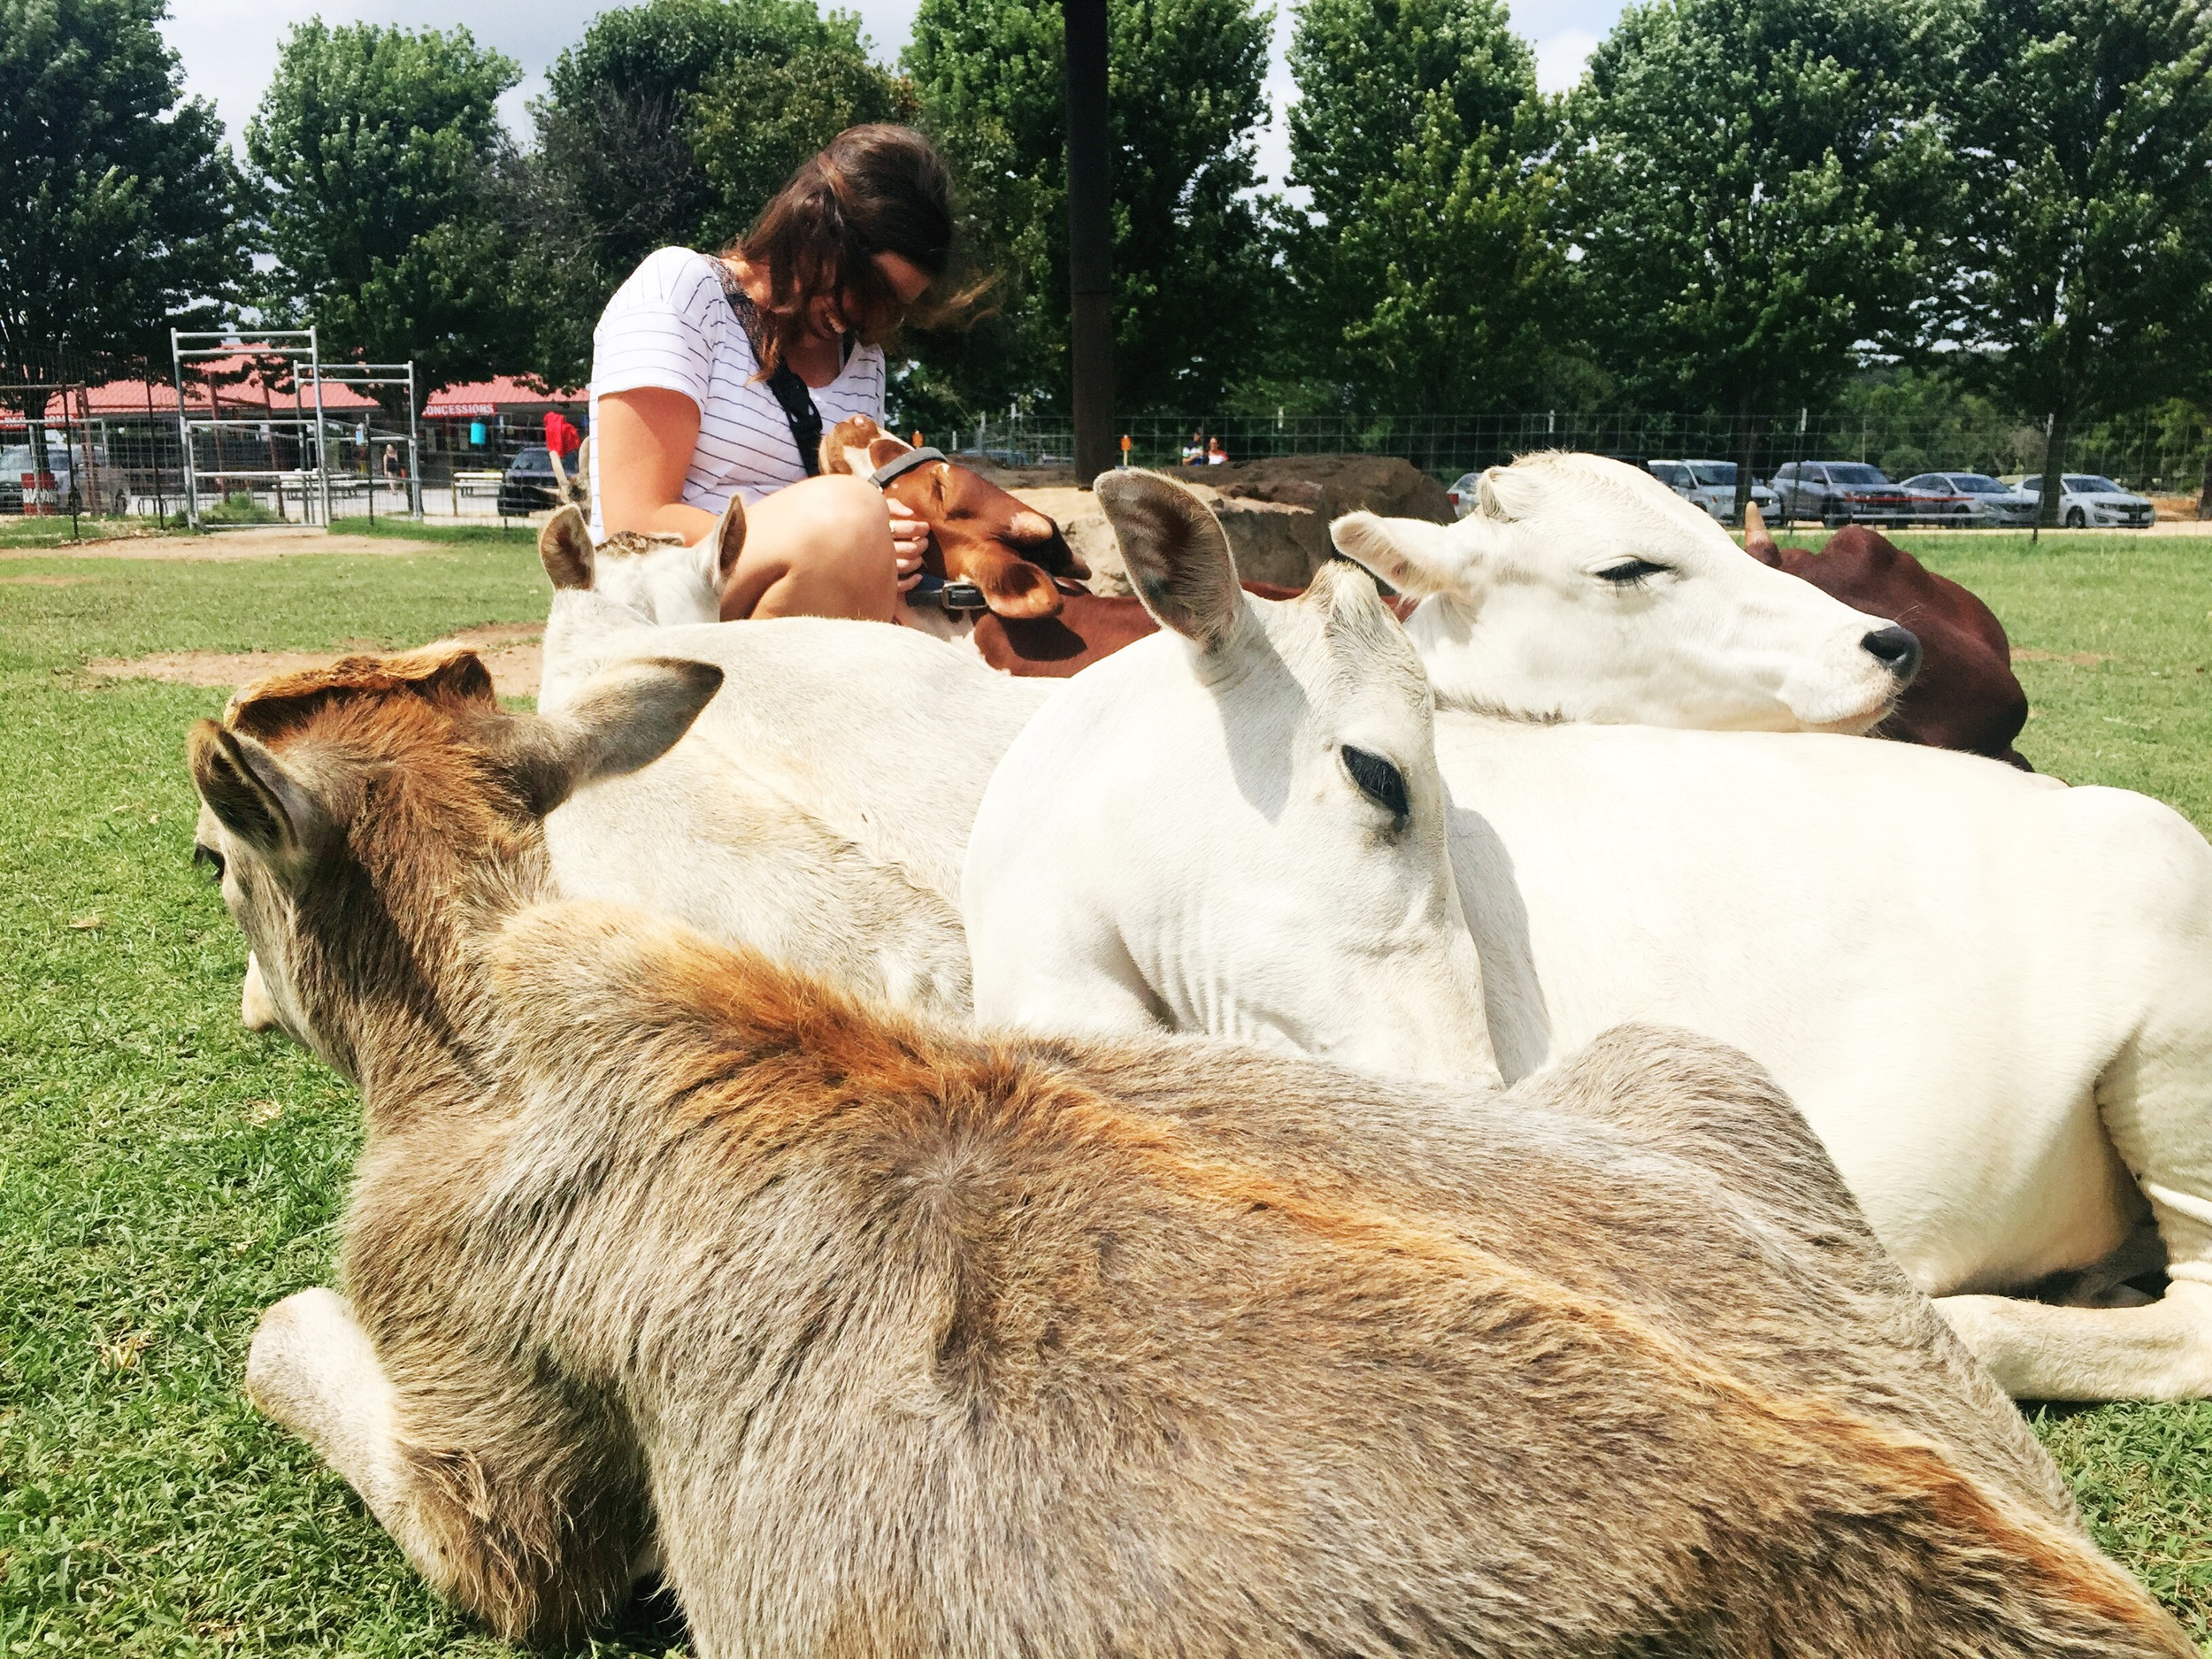 The little brown cow licked my arm...and it was a really weird feeling.